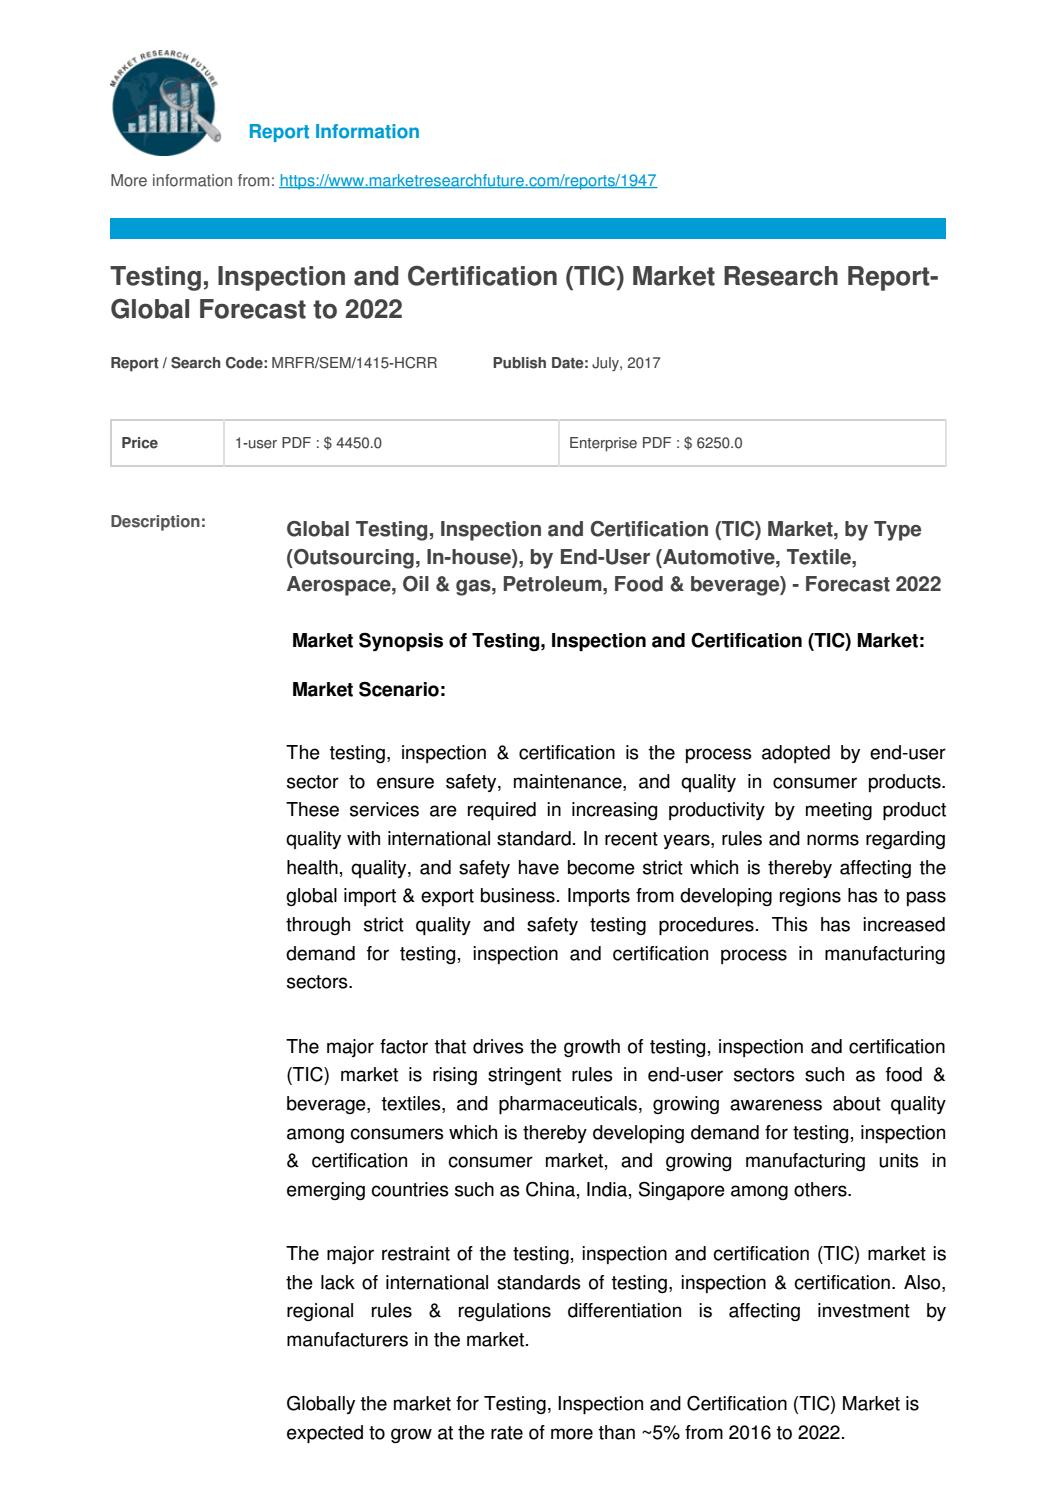 Testing, inspection and certification (tic) market 2017 sgs